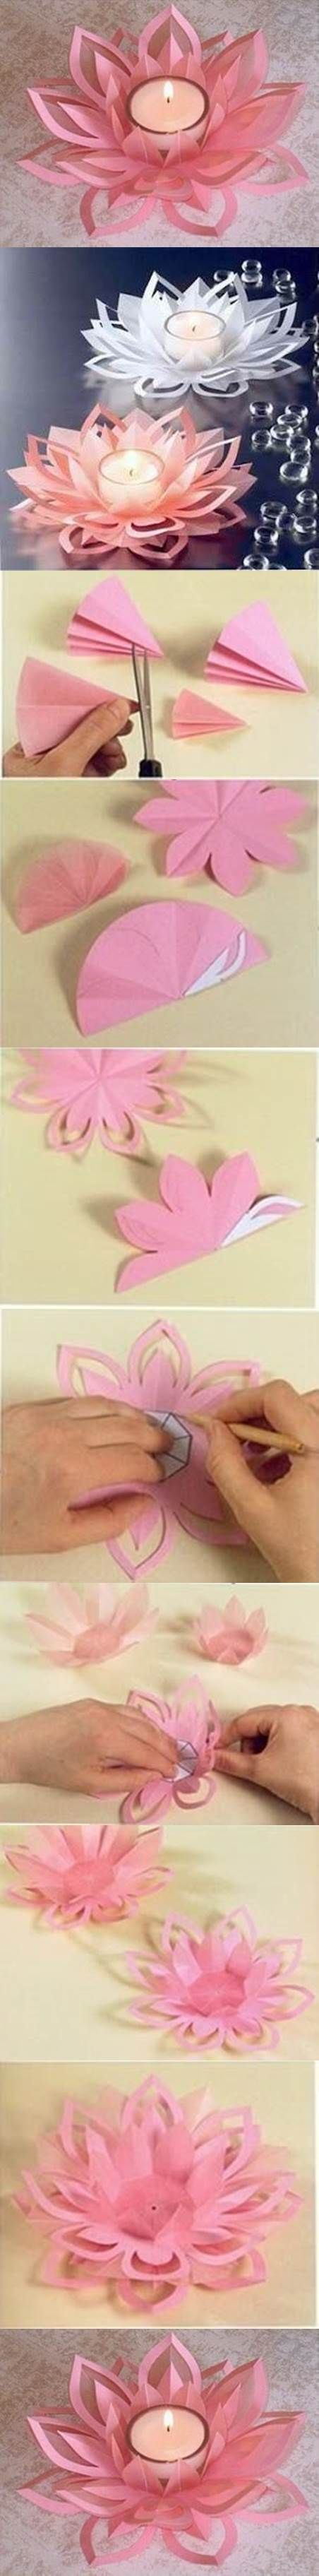 DIY Paper Lotus Candlestick | iCreativeIdeas.com Follow Us on Facebook --> https://www.facebook.com/iCreativeIdeas